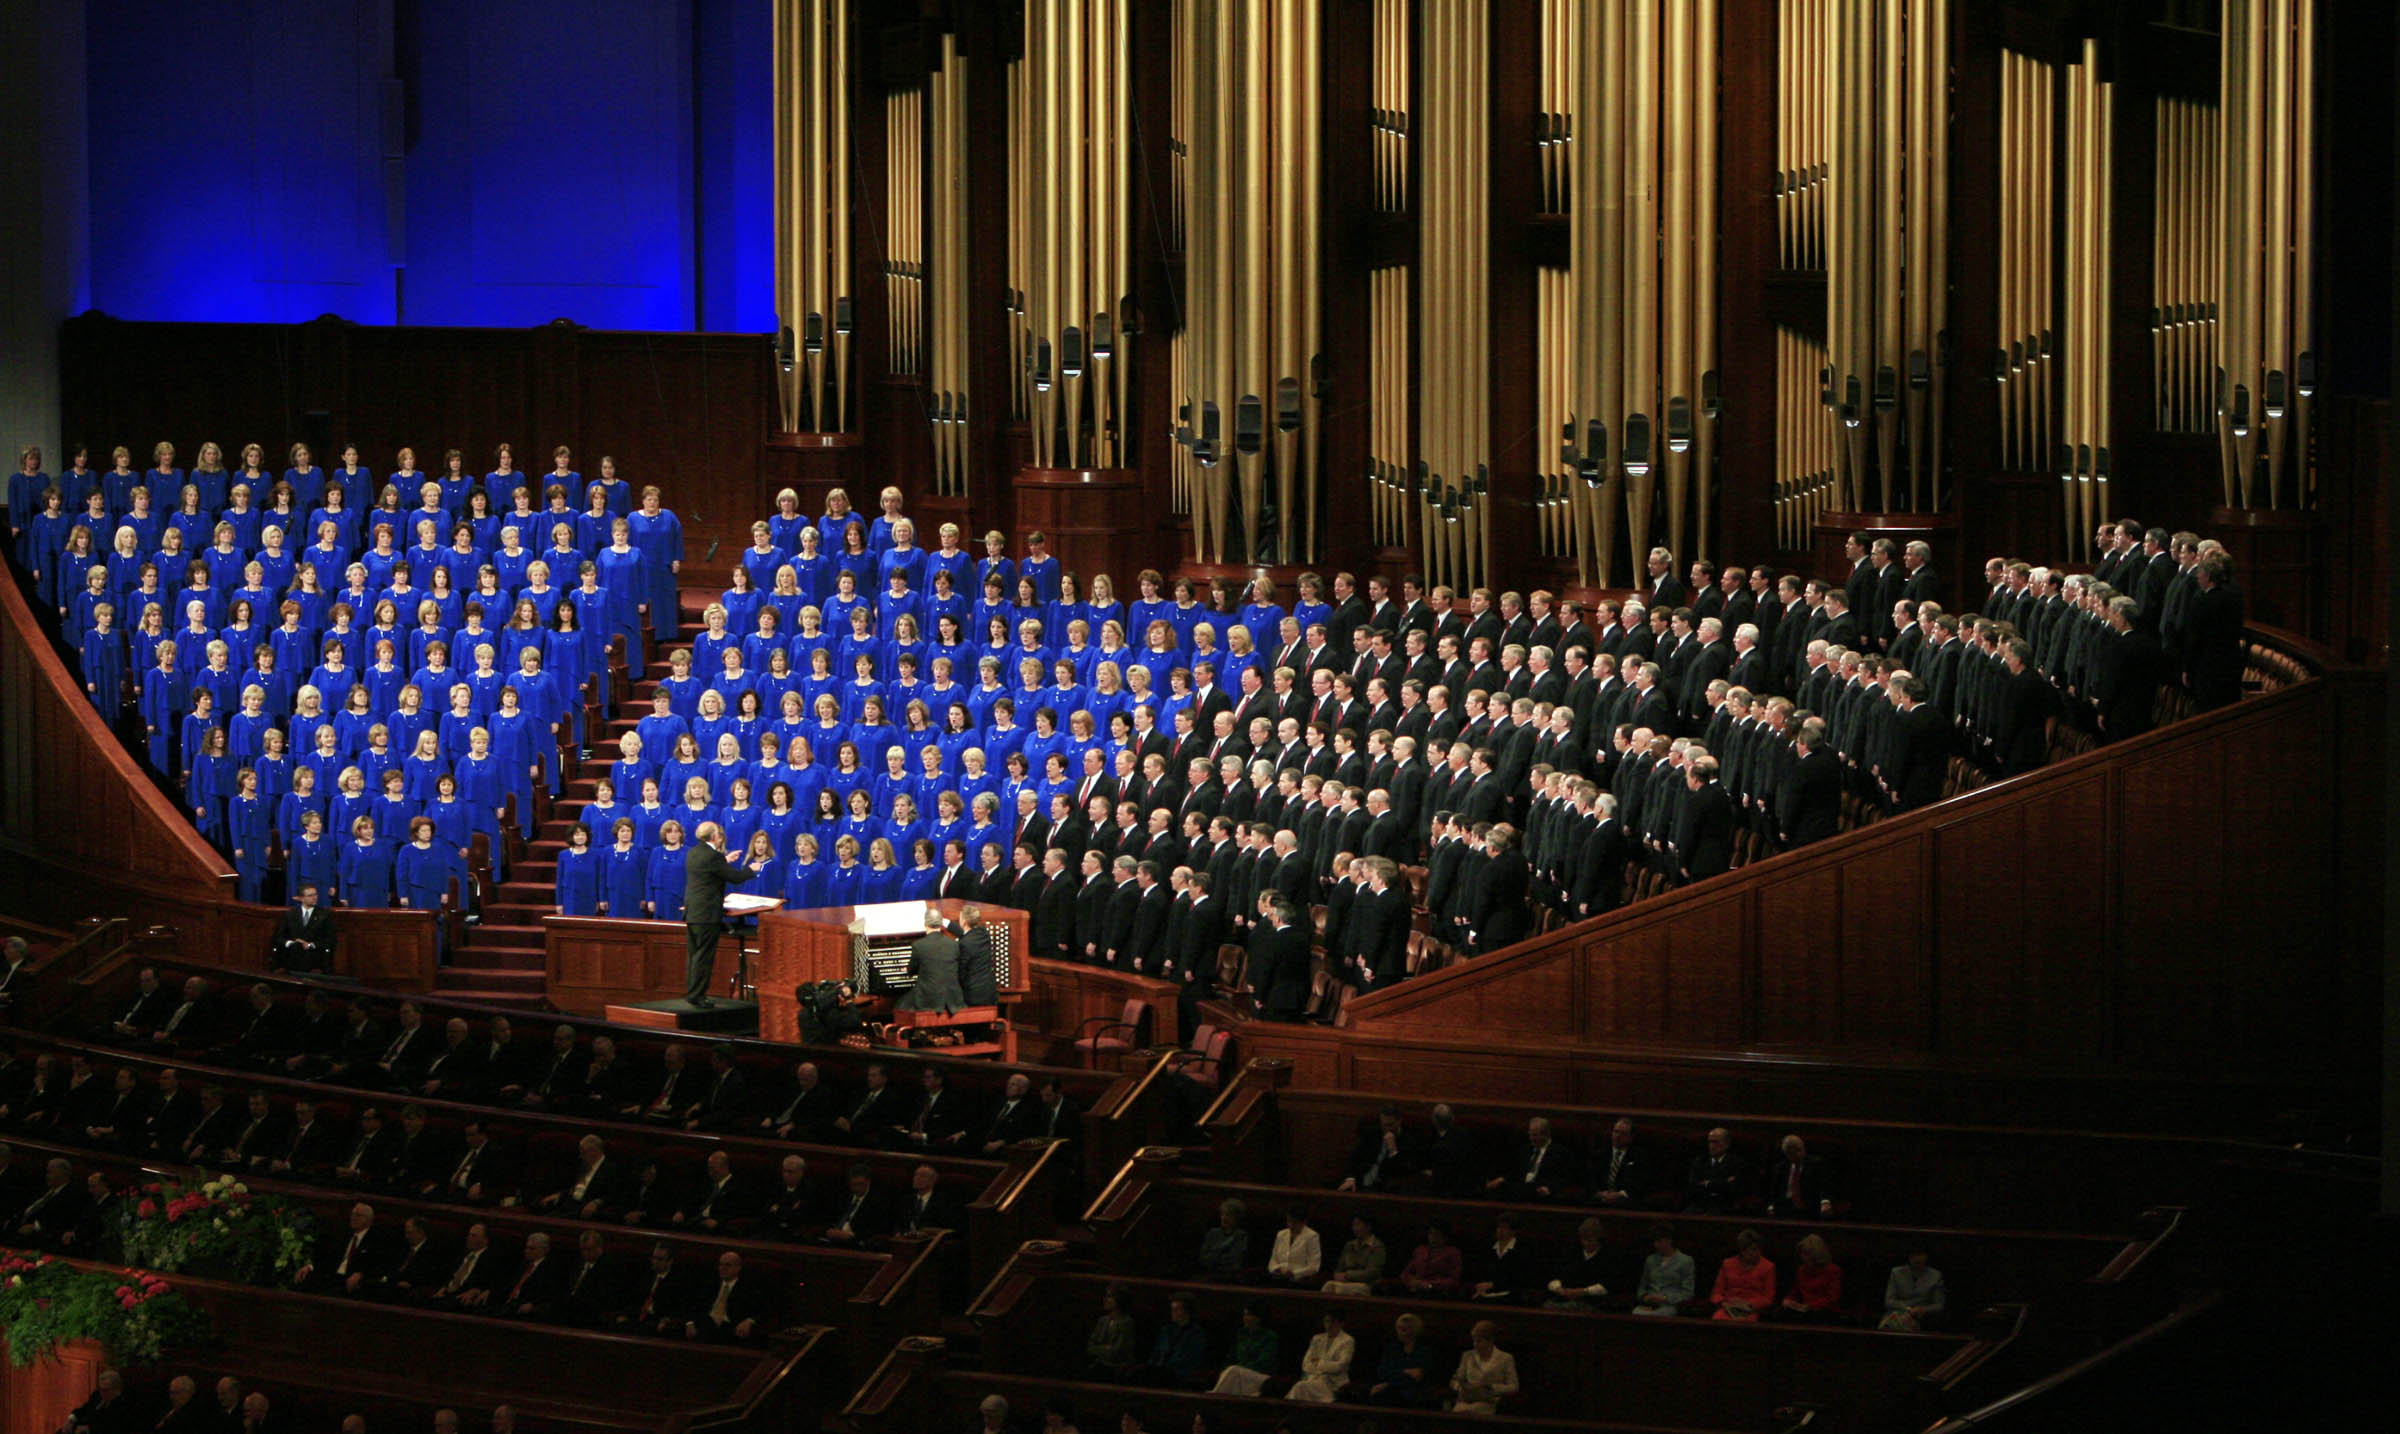 Members of the Tabernacle Choir sing in the Conference Center during LDS General Conference April 6, 2008.